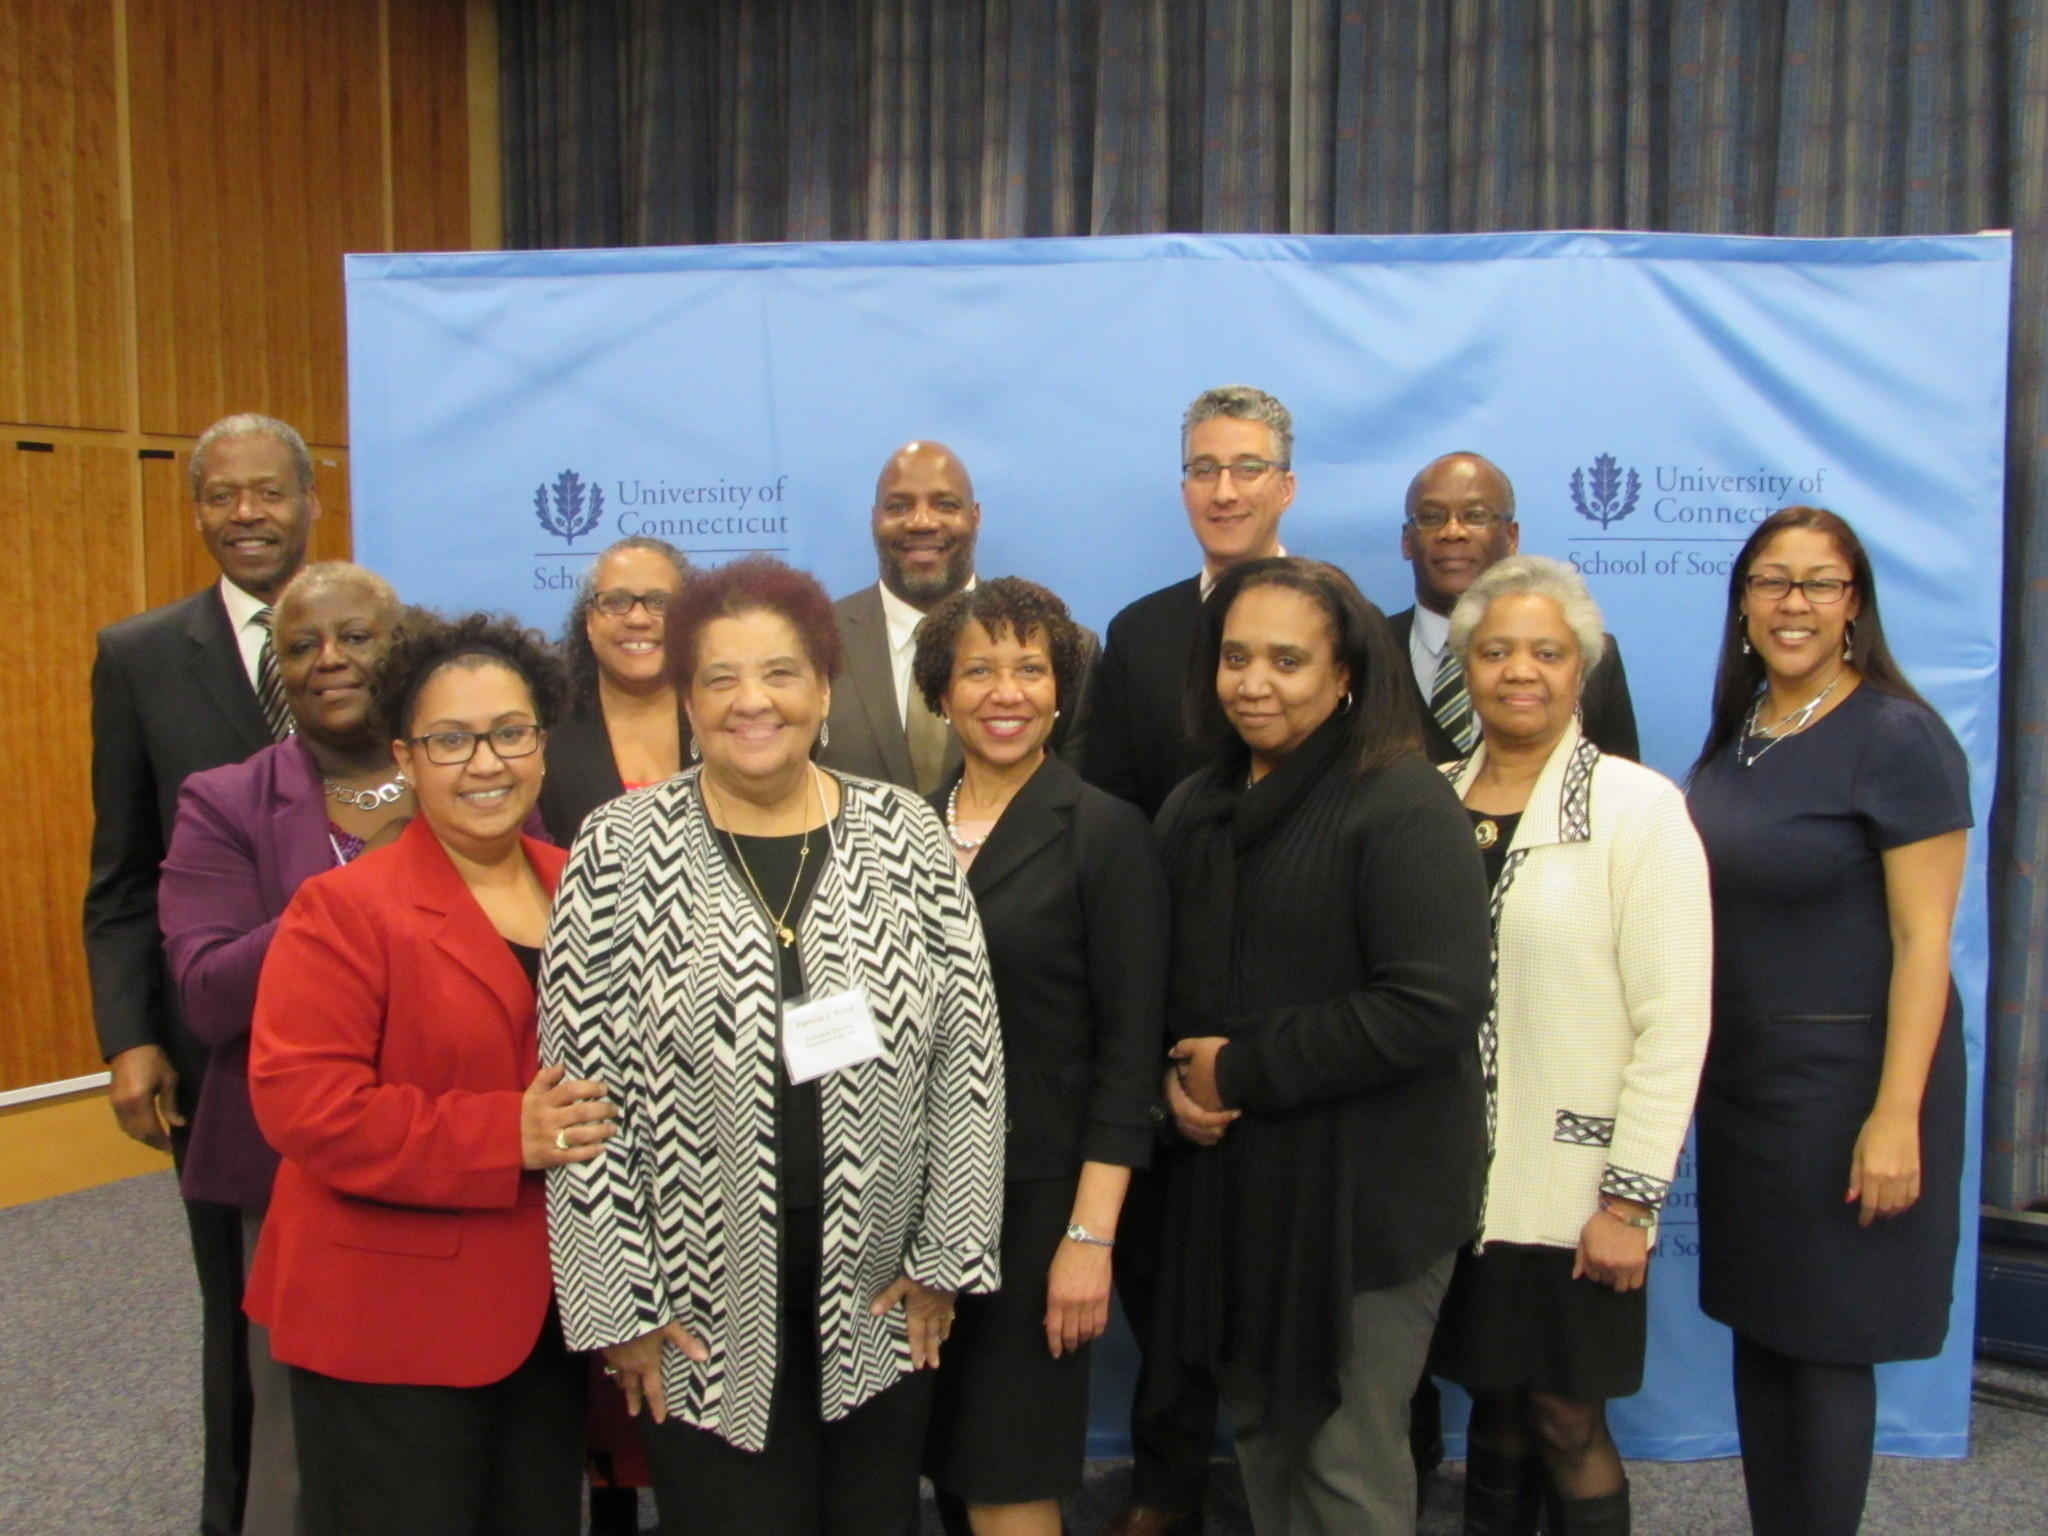 Back row, from left to right: Senator Eric Coleman, Professor William Jelani Cobb, Associate Dean Scott Harding, Professor Barris Malcolm. Middle row, from left to right: Gloria Robinson, Professor Ann Marie Garran, Dean Salome Raheim, D'Lon Wilcox, Professor Edna Comer, Professor Kimberly Hardy. Front row, from left to right: Cheryl Jackson-Morris, Patricia Wrice.